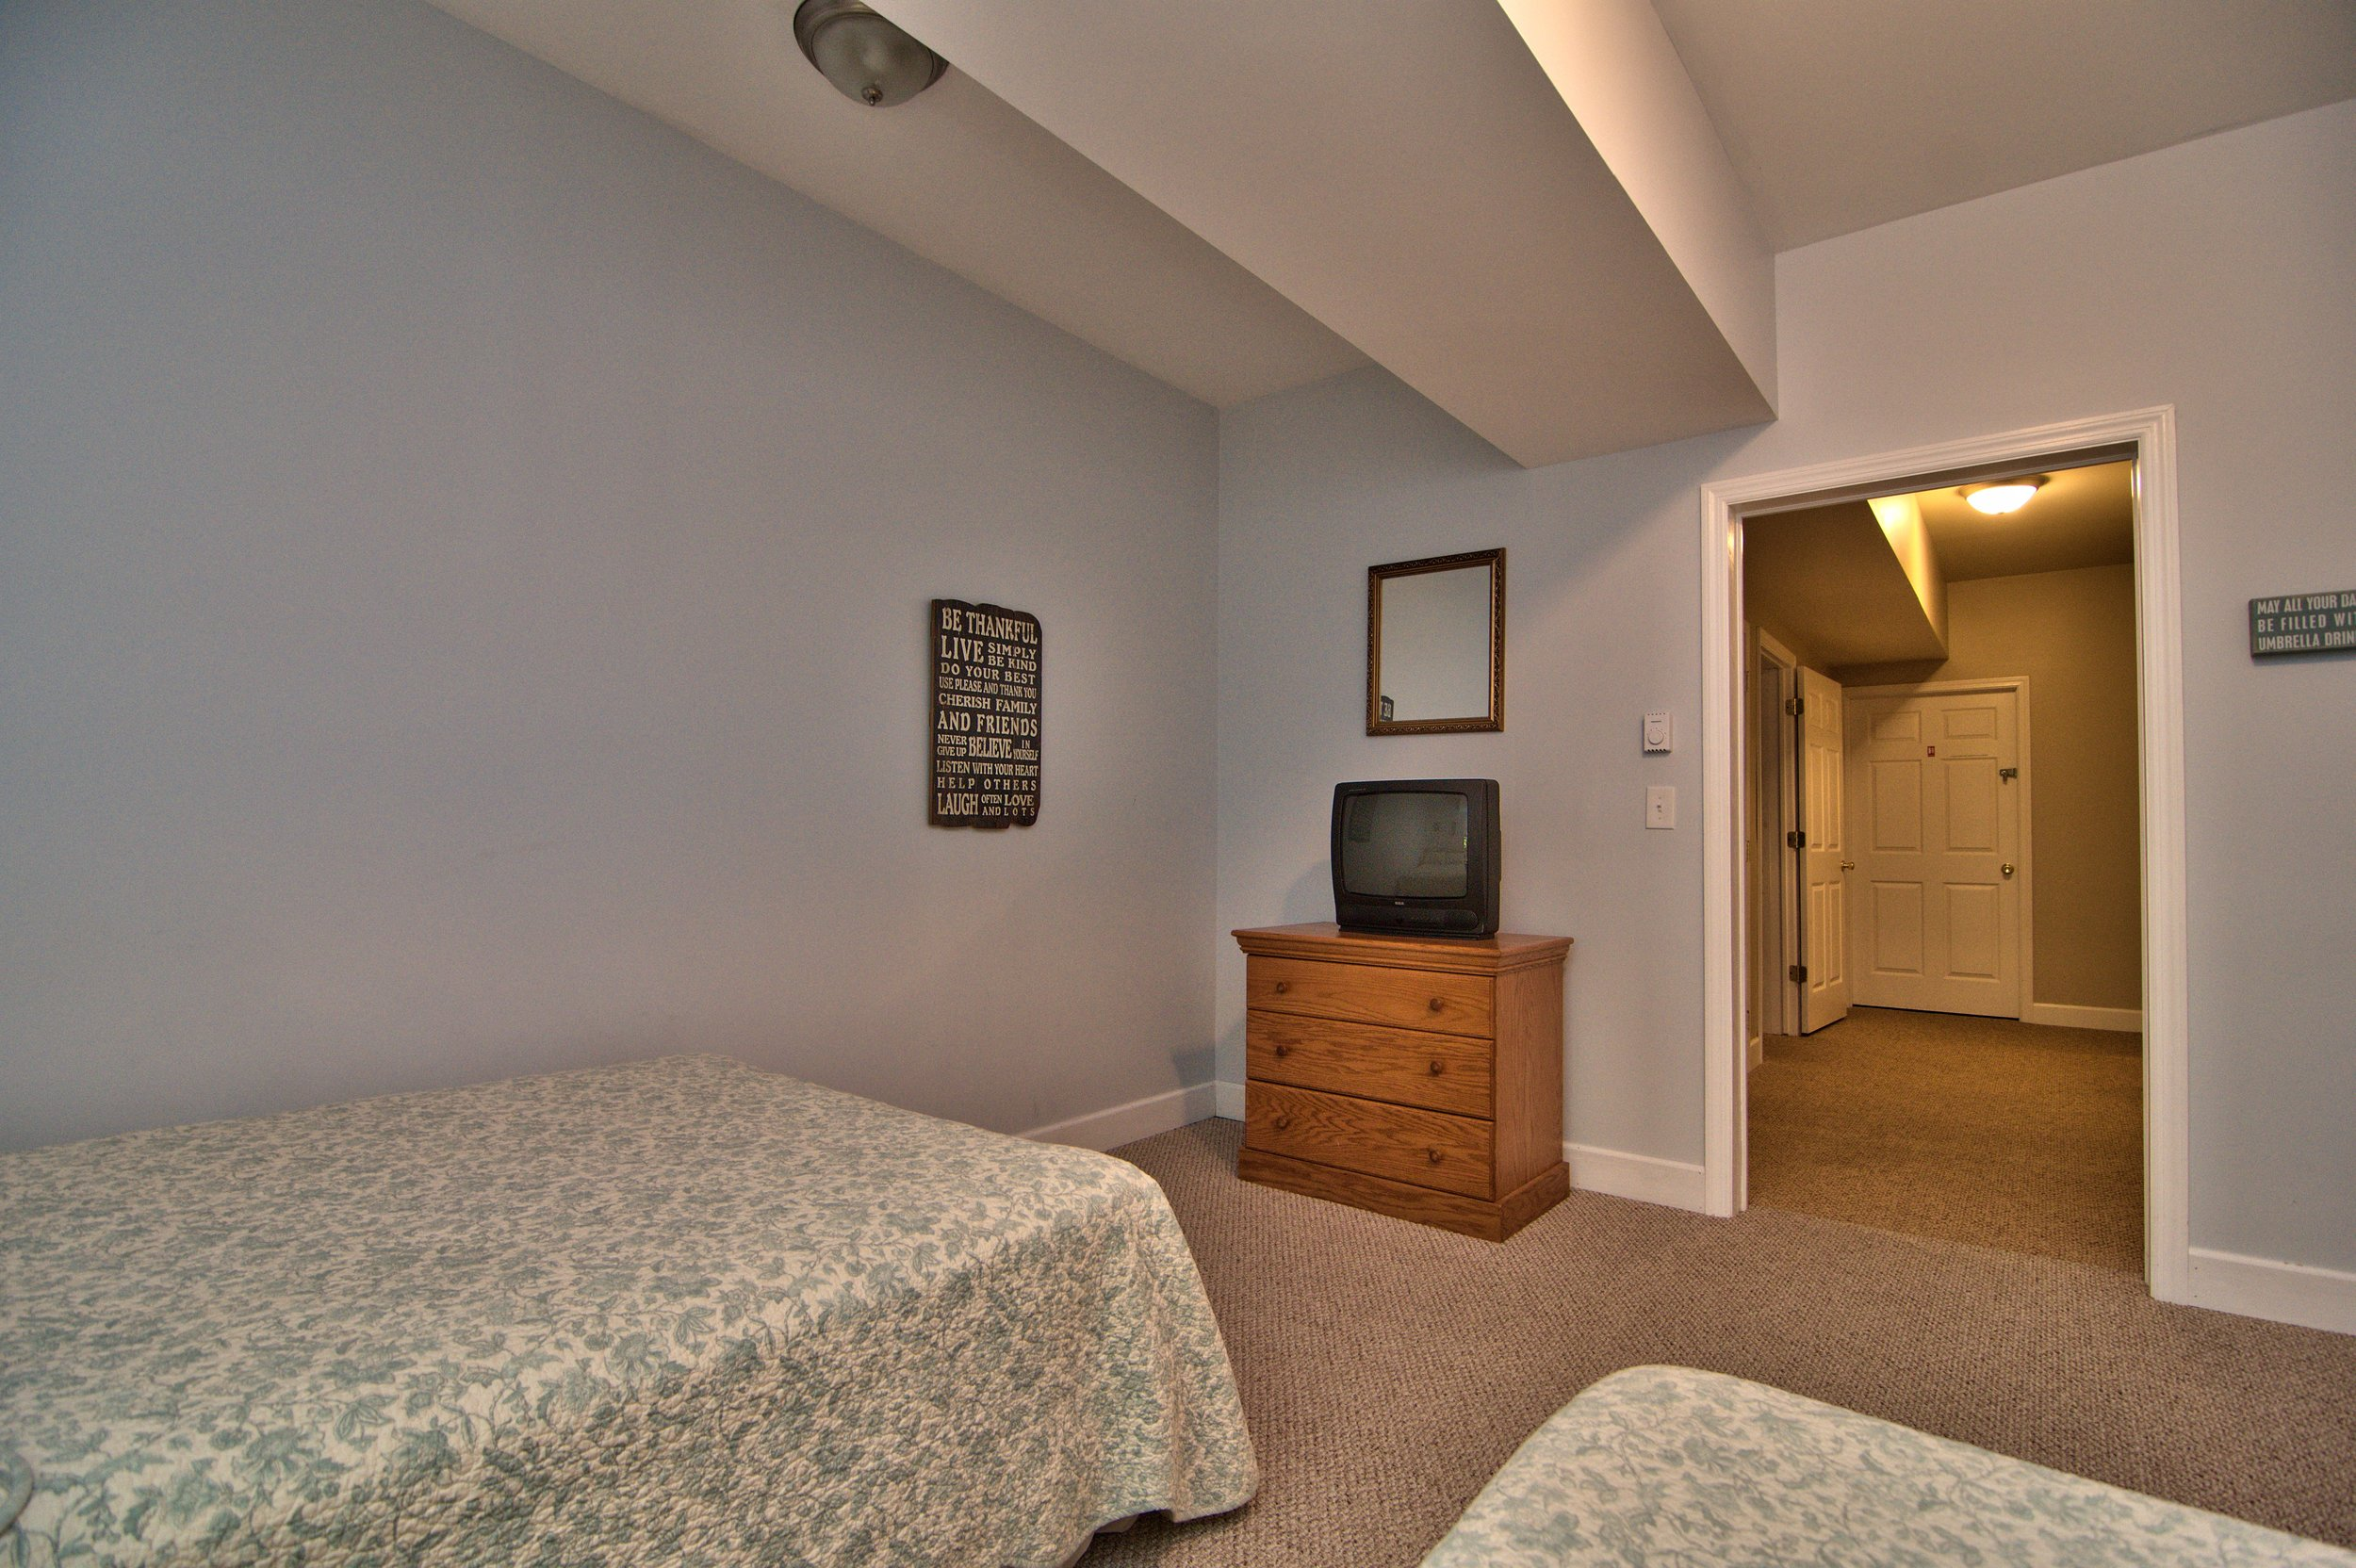 Lower Level Bedroom 2 View 1.jpg